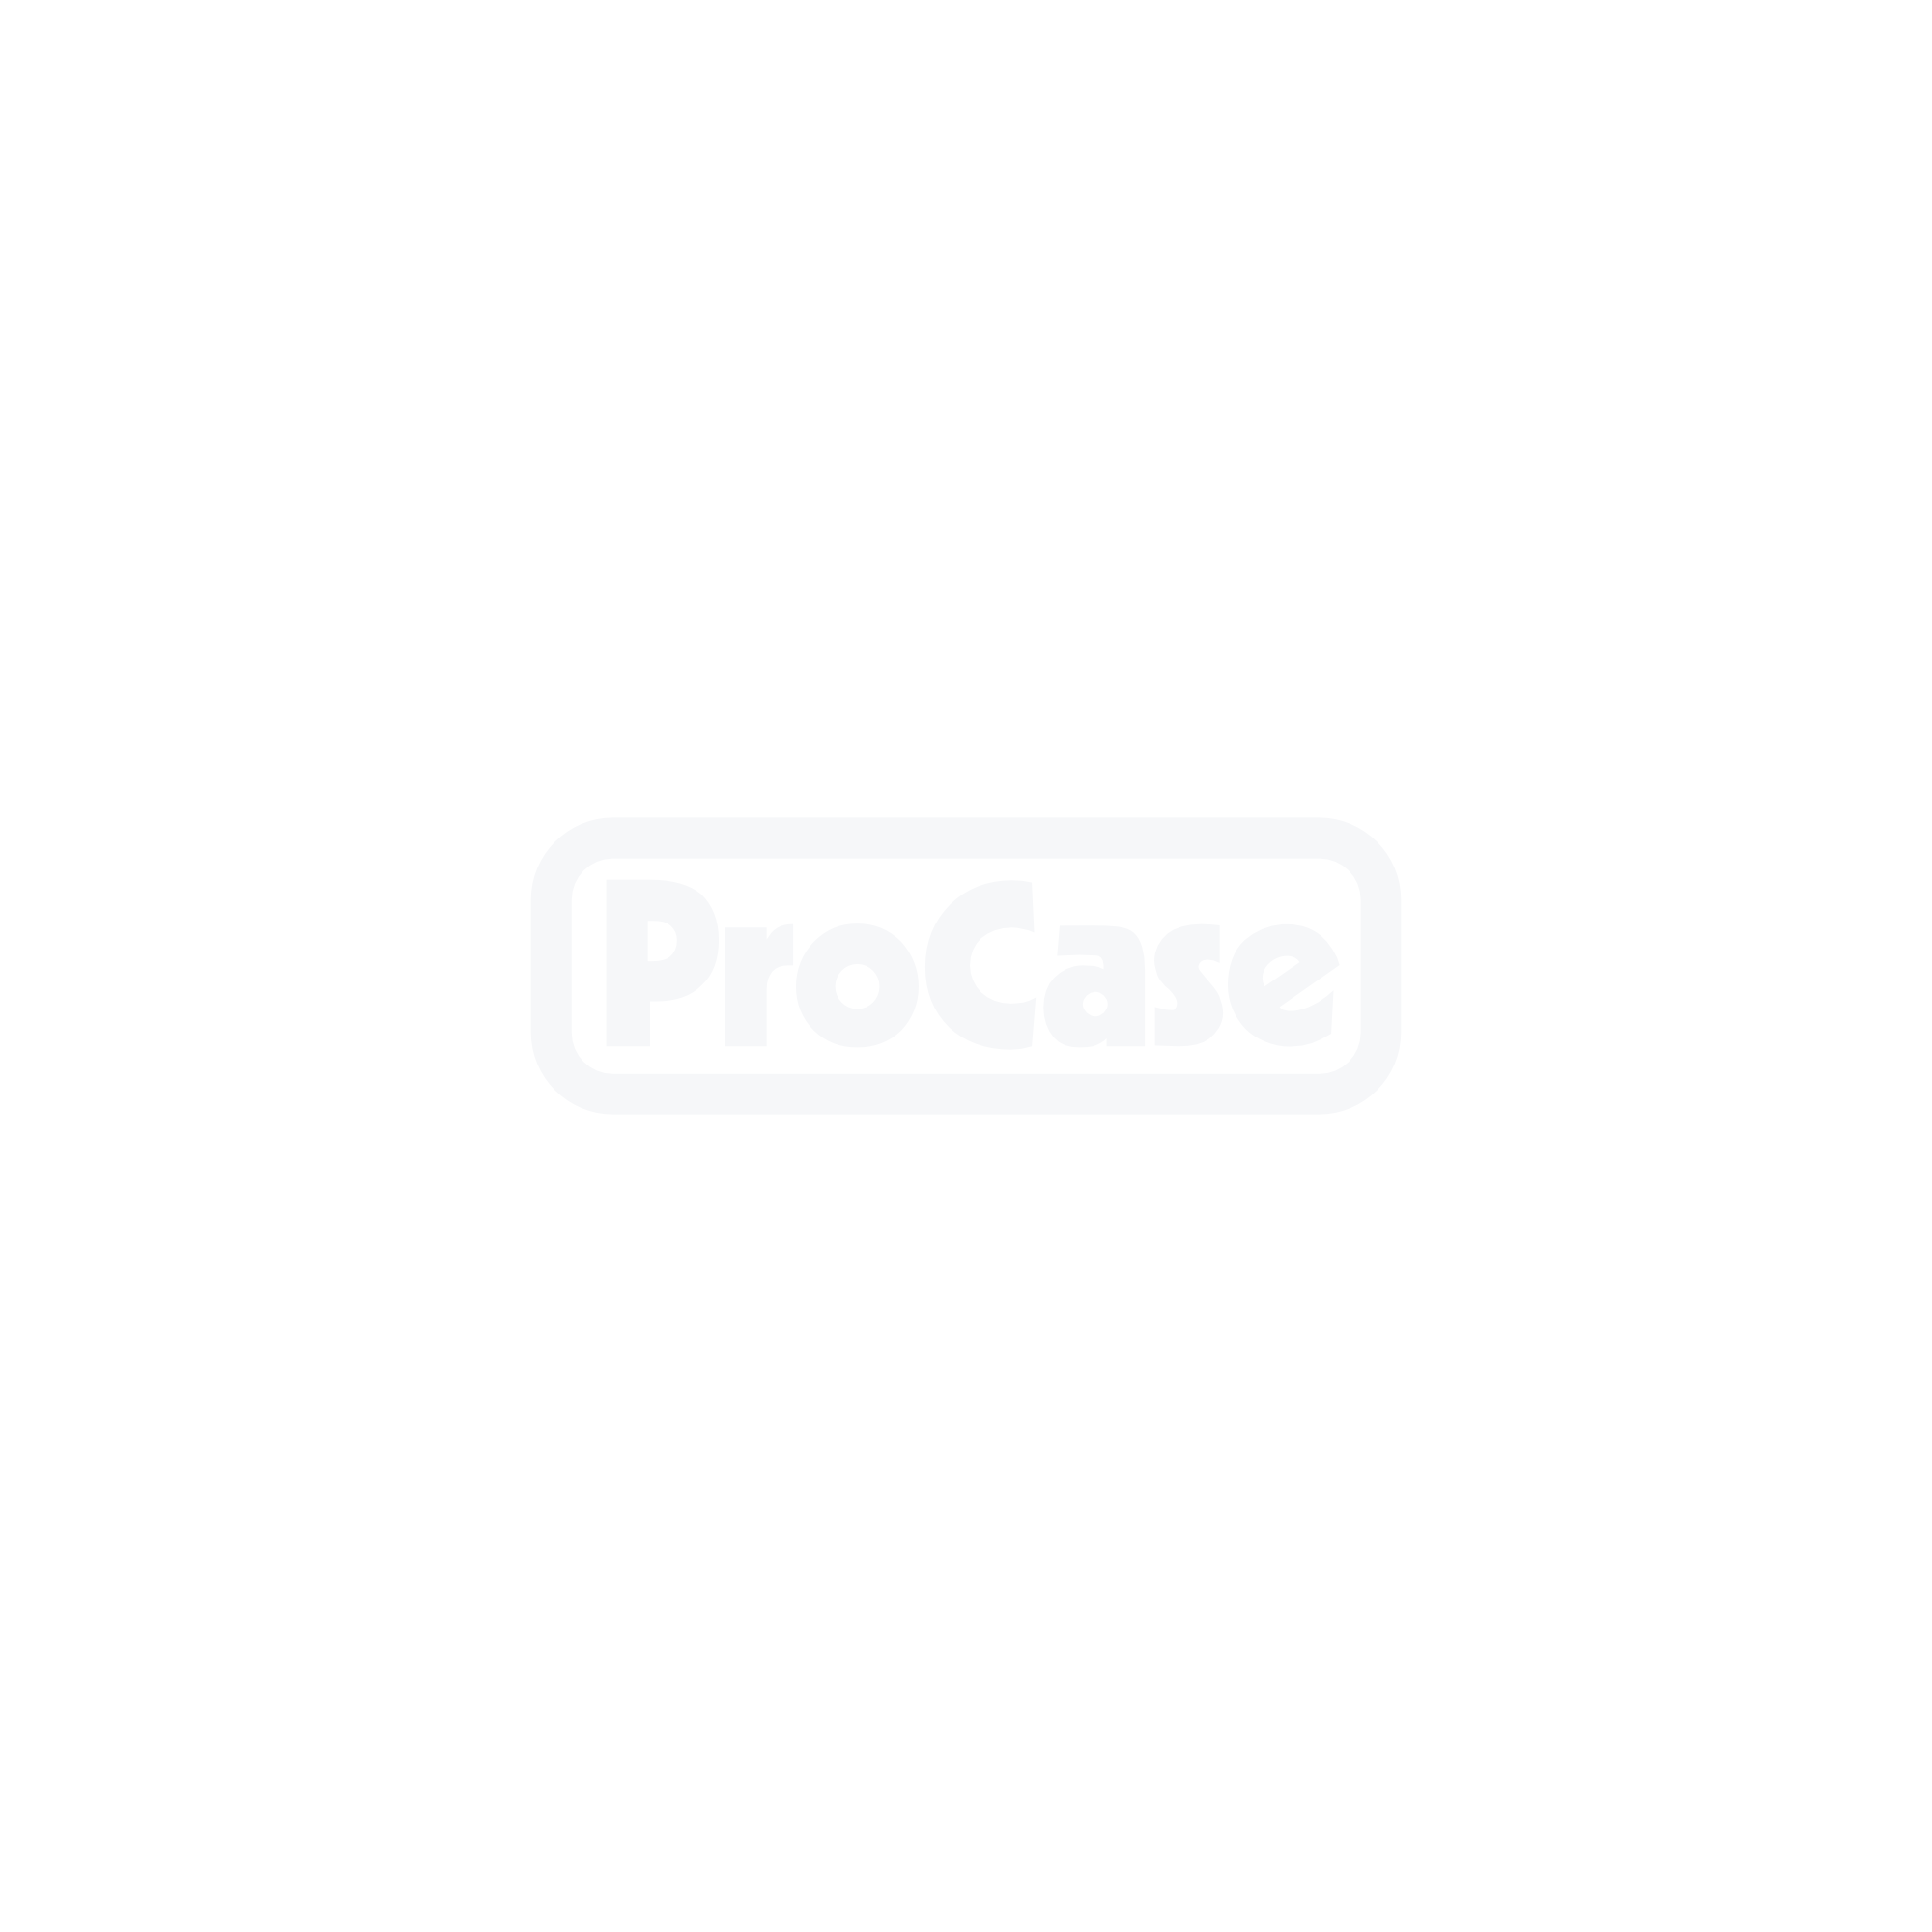 Flightcase für 4 Futurelight DMH-160